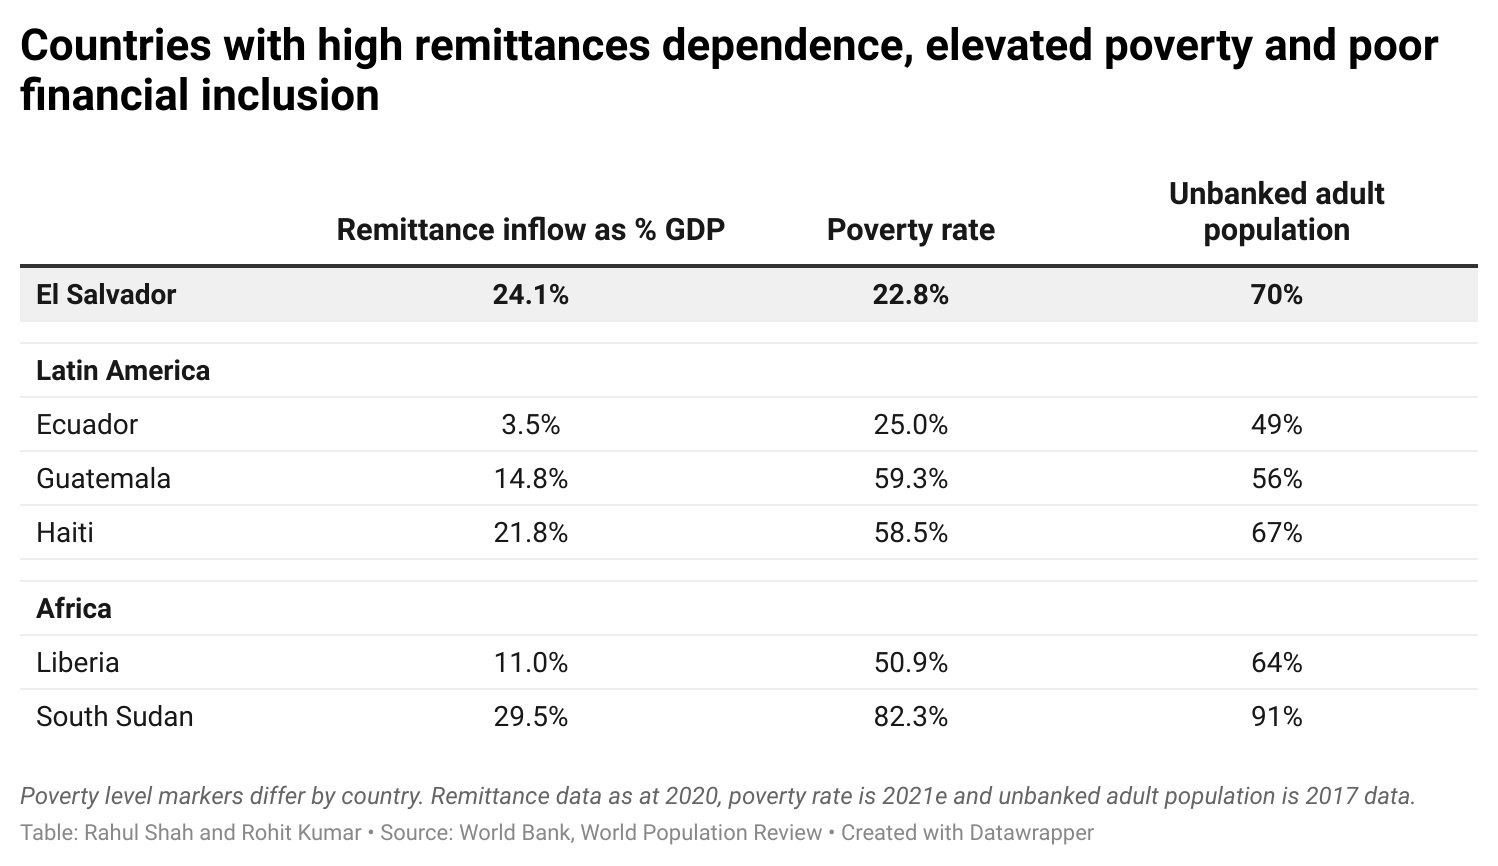 Countries with high remittances dependence, elevated poverty and poor financial inclusion